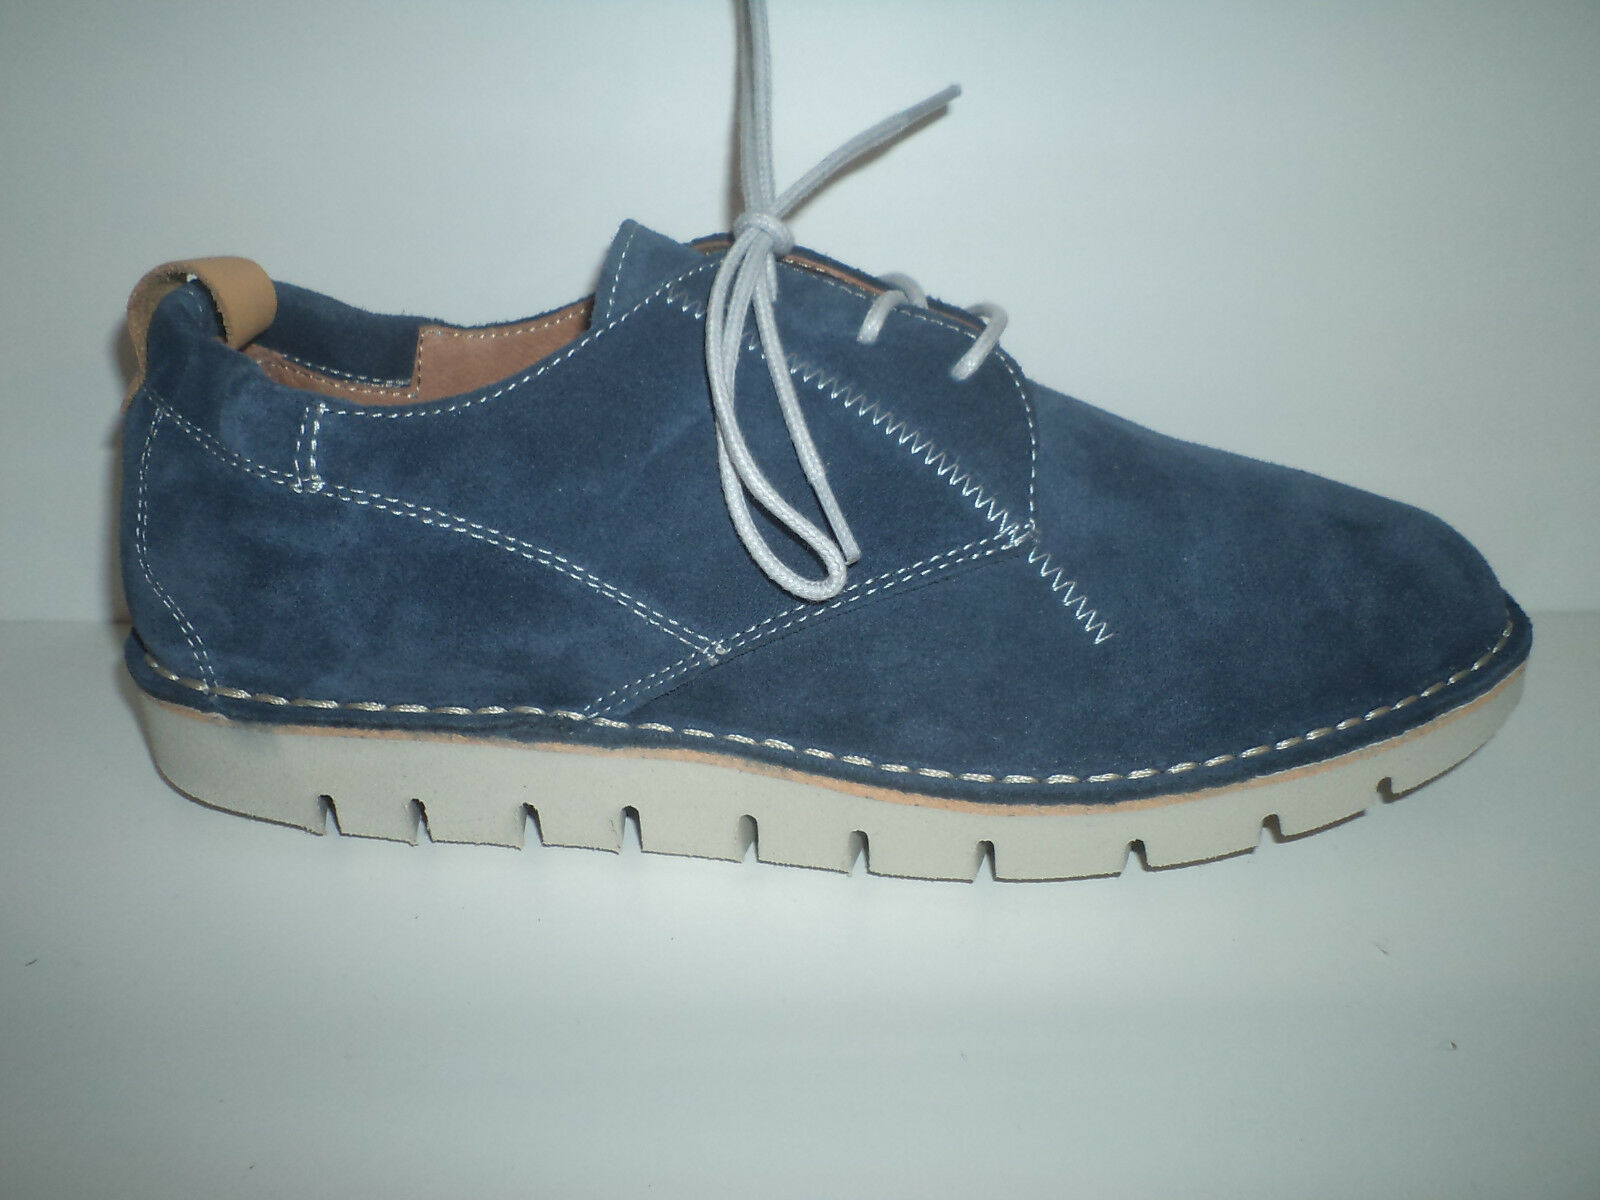 SCONTO 30 % zapatos DERBY  hombres CAFè negro SUMMER CROSTA NAVY ART PP601